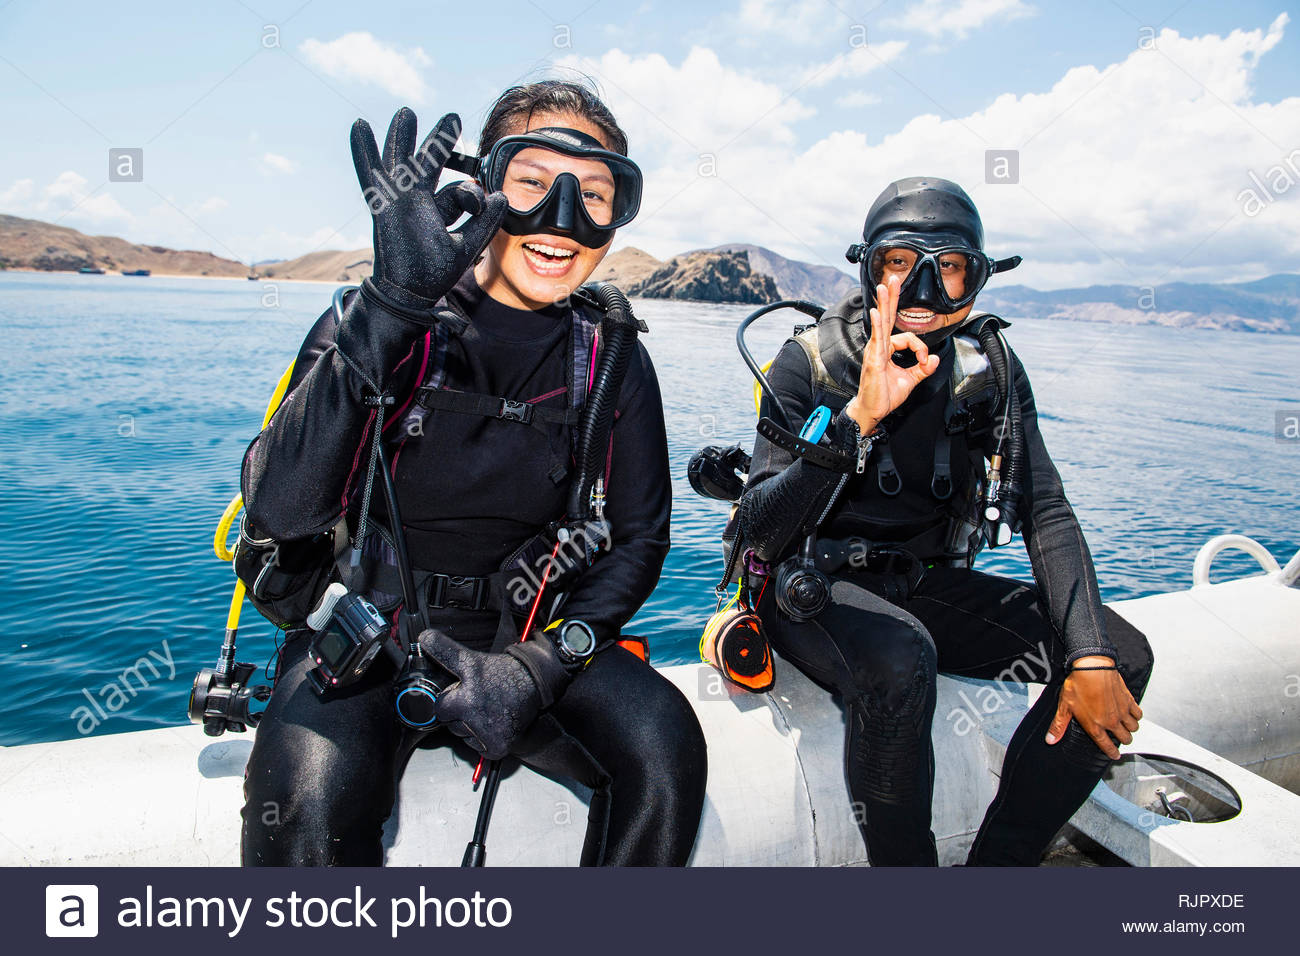 Two scuba divers about to submerge into sea - giving the 'all ok' hand signal,  Komodo Island, East Nusa Tenggara, Indonesia - Stock Image